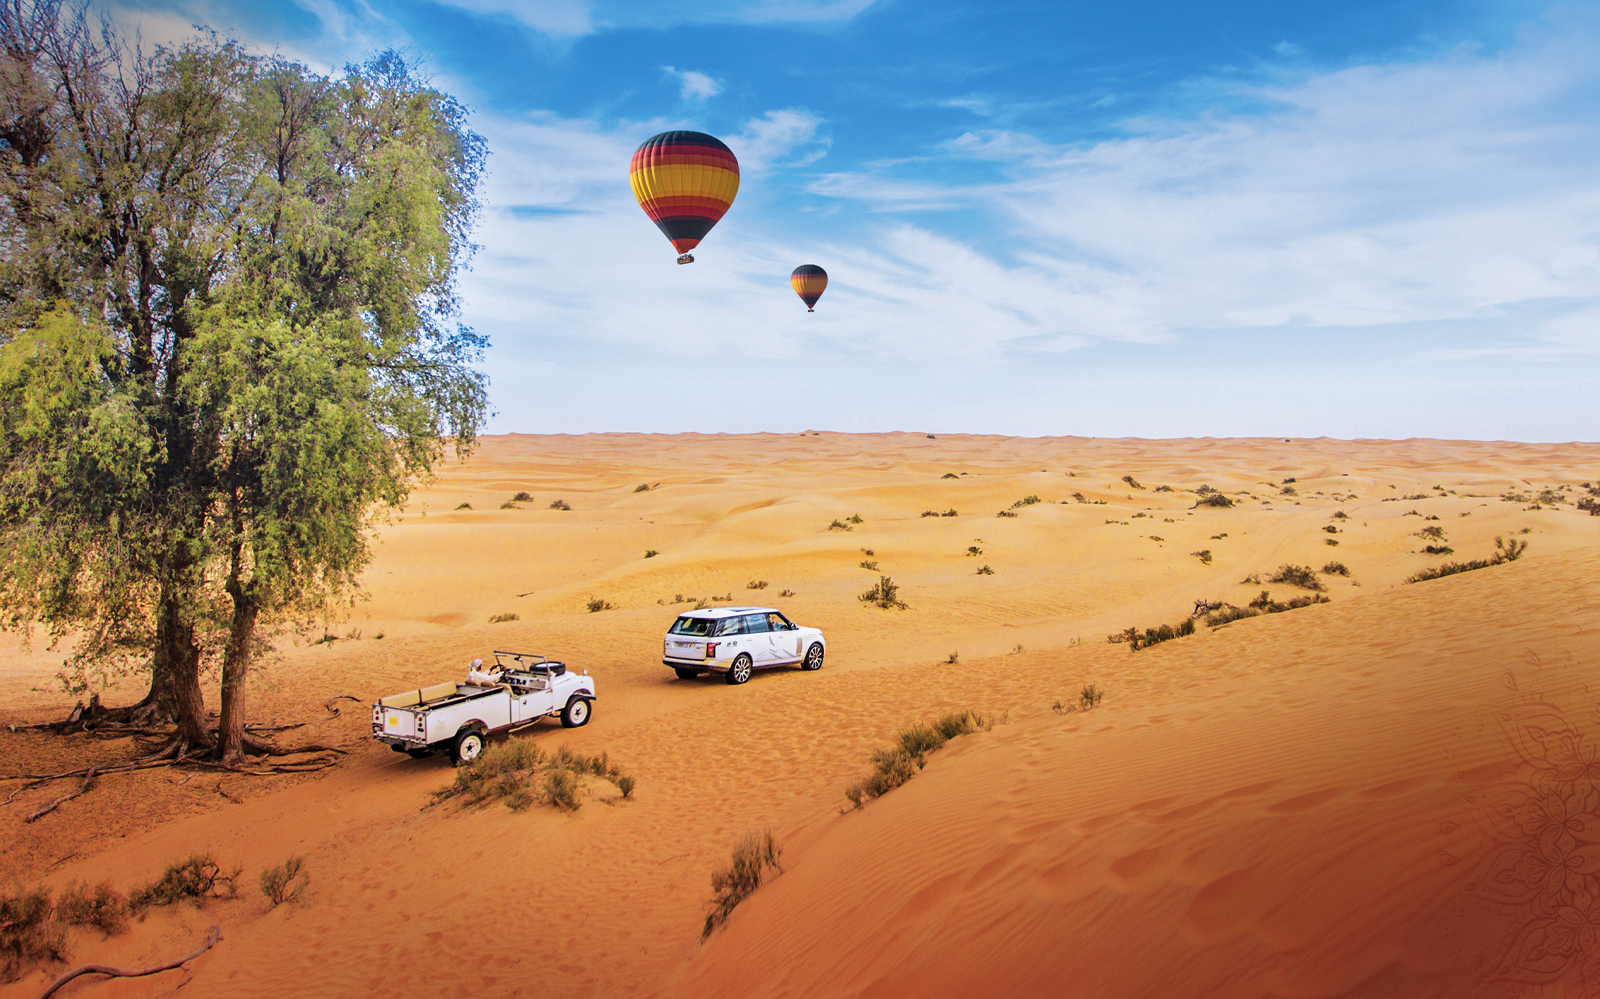 Soar Above The Desert With These Amazing Hot Air Balloon Rides In Dubai